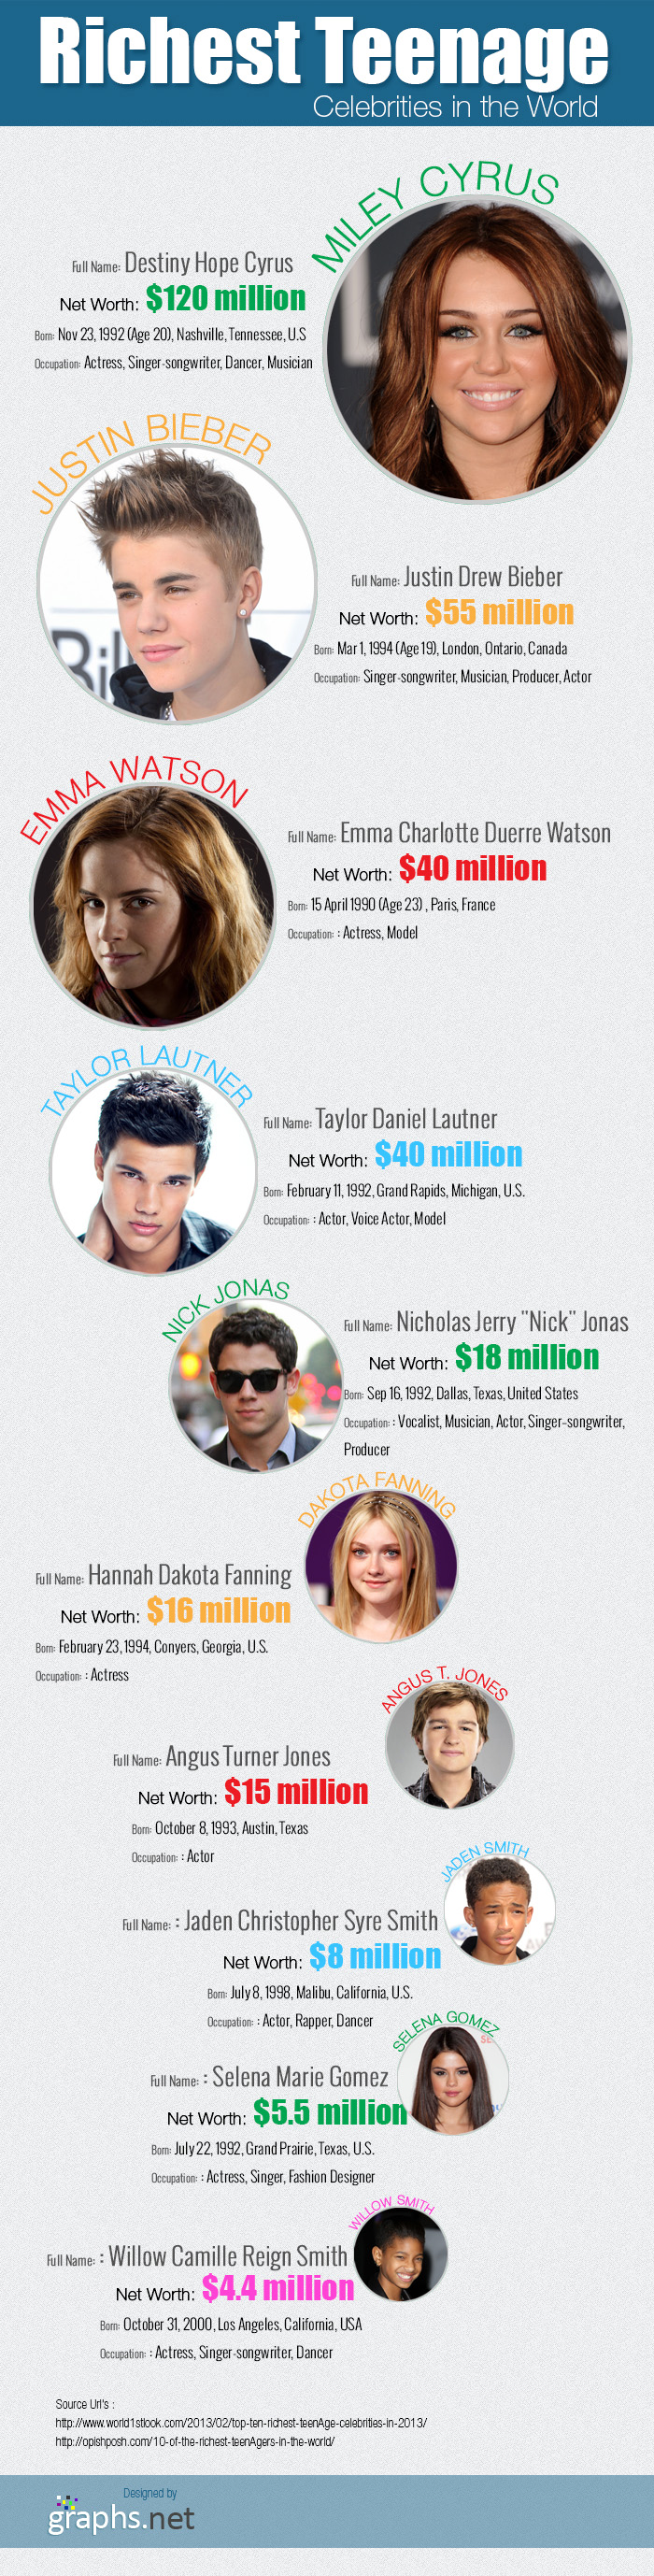 Richest Teenage Celebrities in the World